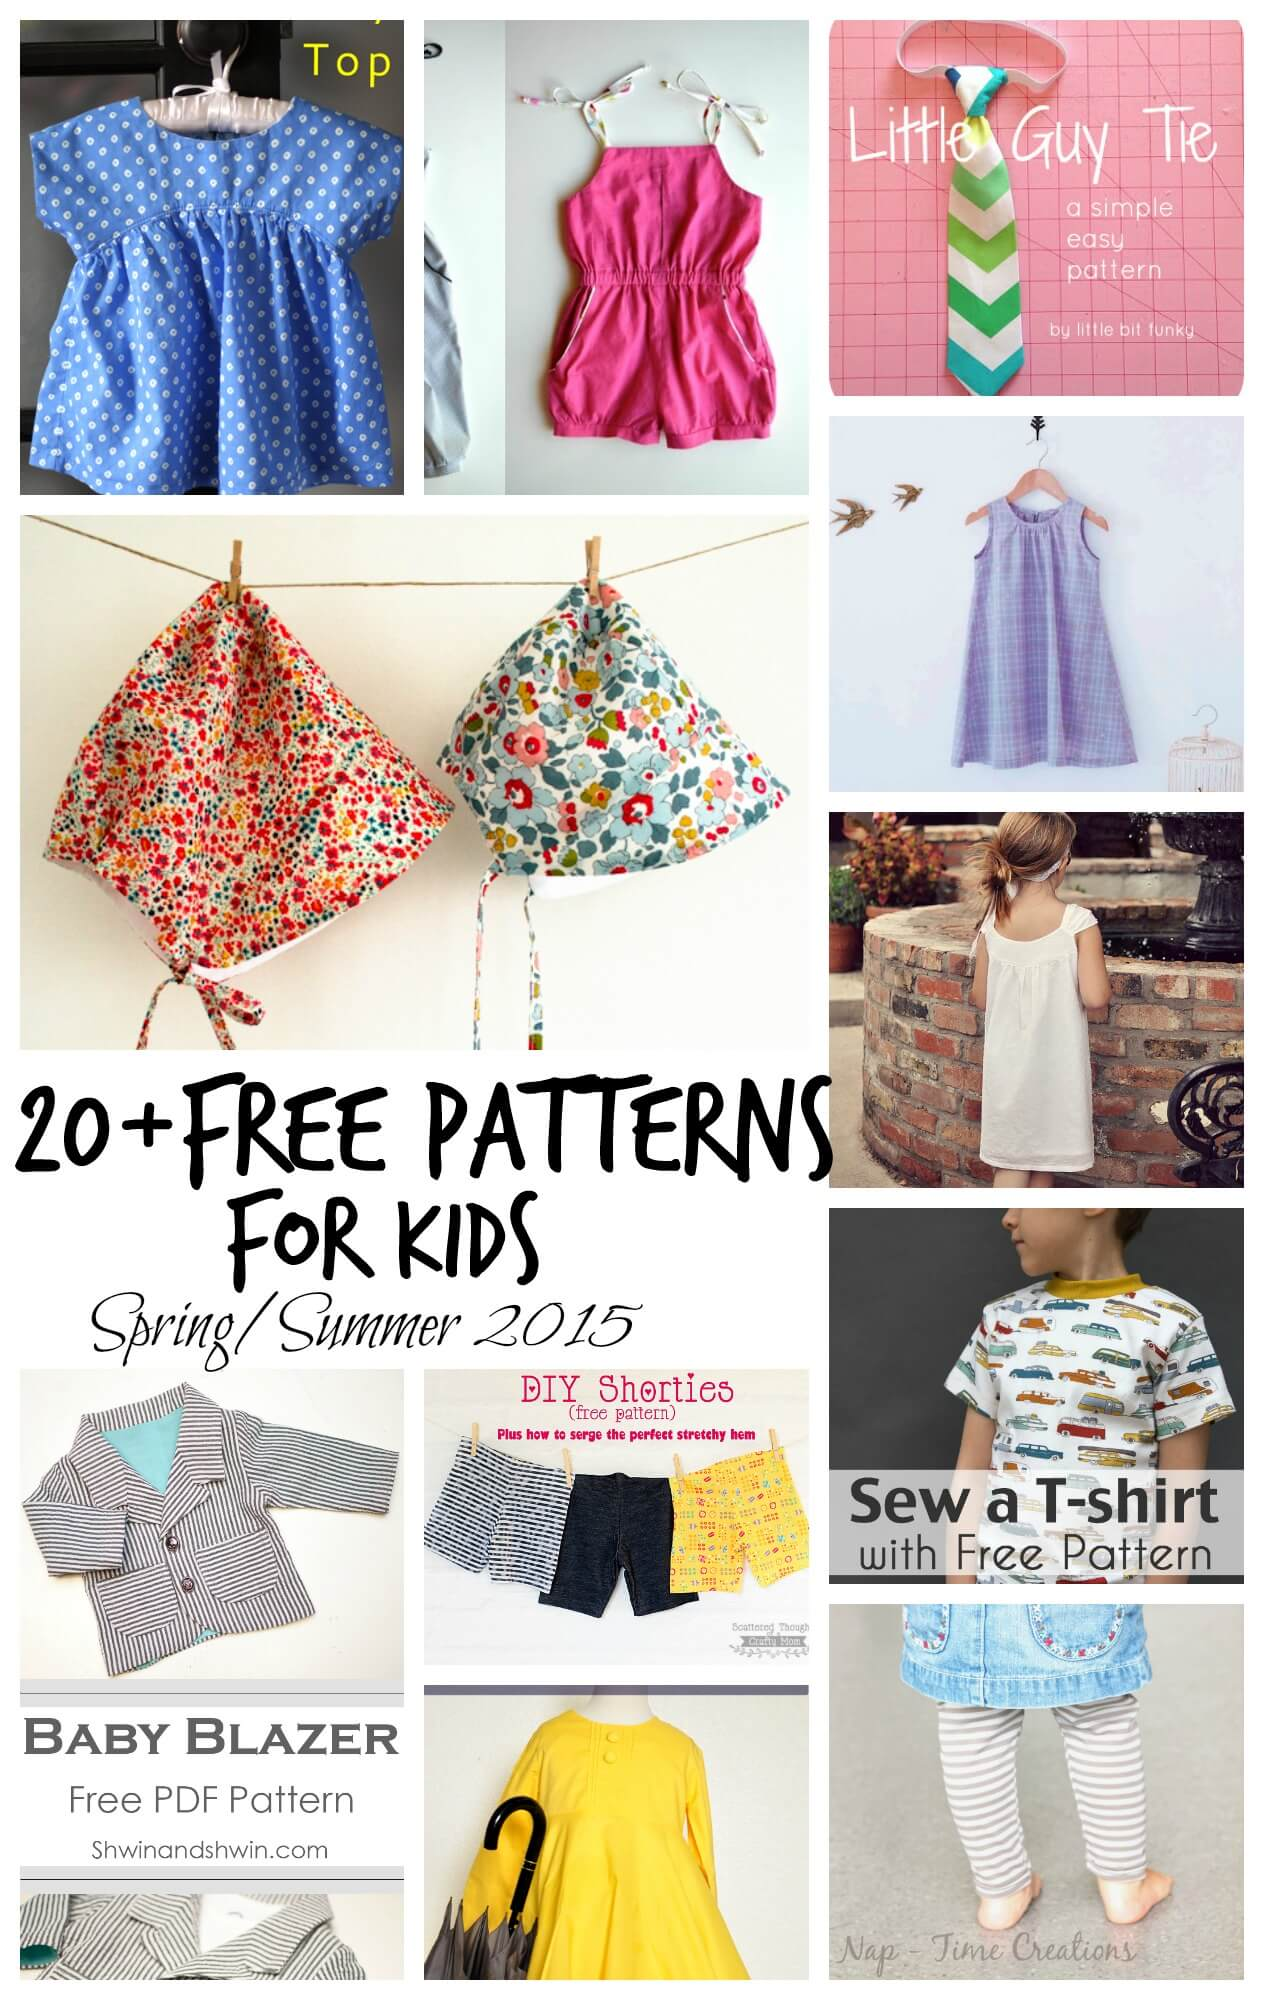 Free sewing patterns for kids springsummer 2015 life sew savory free sewing patterns for kids springsummer 2015 jeuxipadfo Images